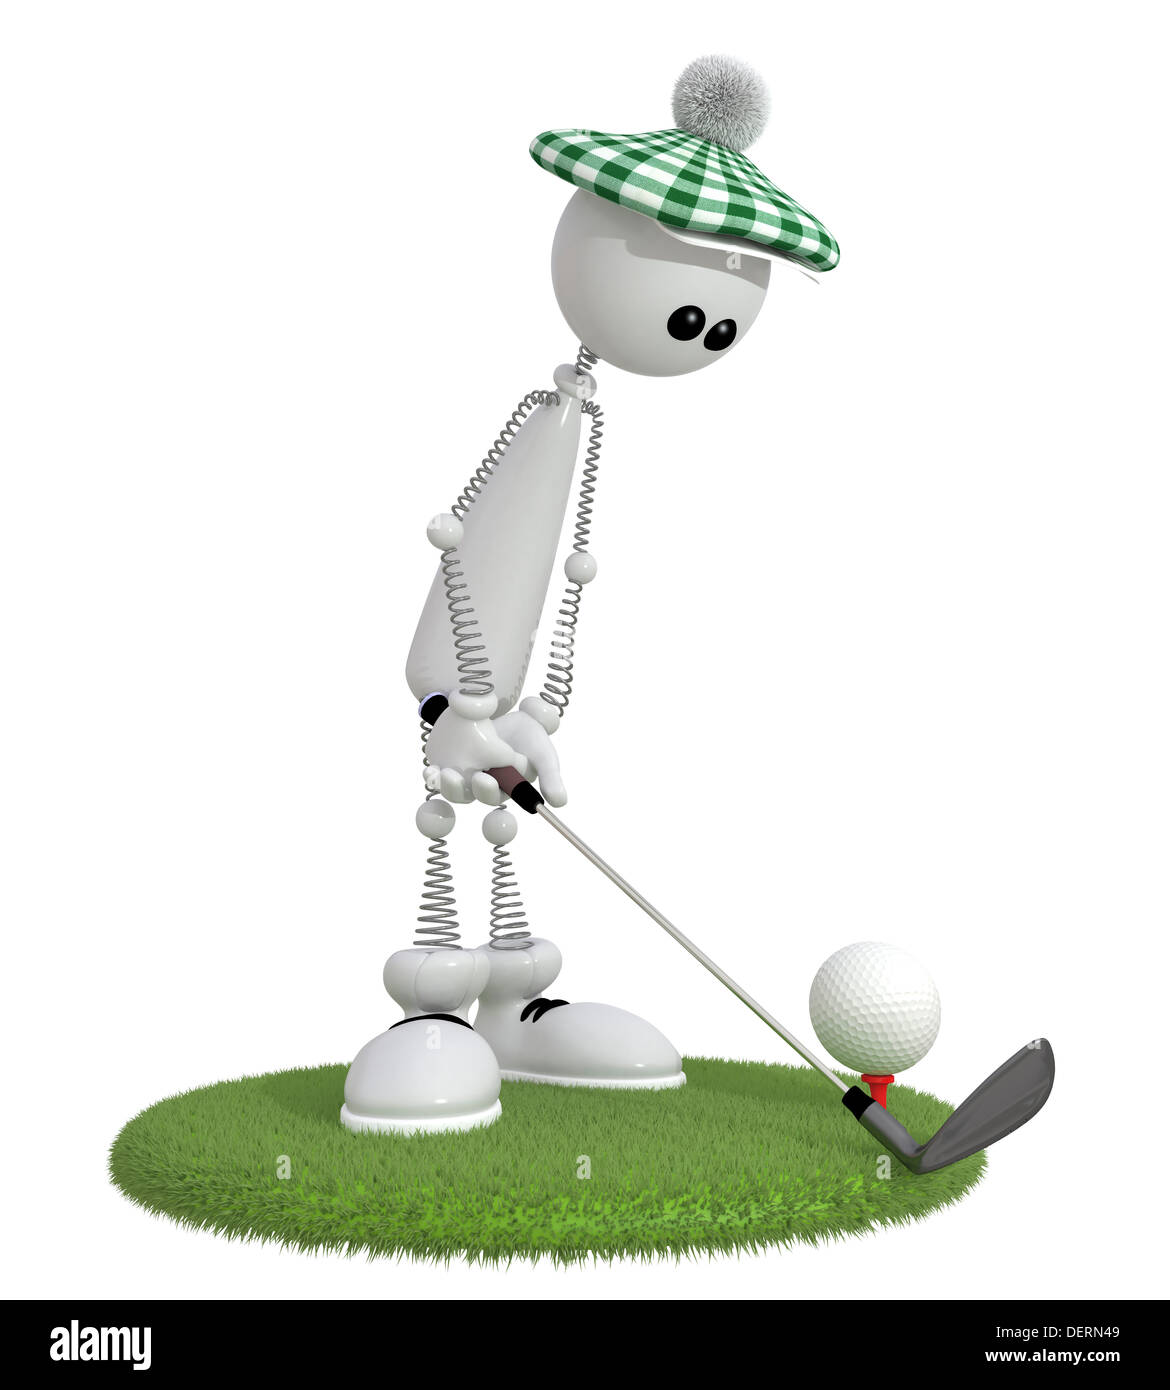 Golf Cartoon Cut Out Stock Images & Pictures - Alamy on cartoon camera, cartoon boxing robe, cartoon baseball, cartoon beach ball, cartoon marble, cartoon bowling, cartoon movie theater, cartoon star, cartoon tennis, cartoon rugby ball, cartoon ping pong ball, cartoon guitar, cartoon club, cartoon cricket ball, cartoon golfer, cartoon trophy, cartoon hat, cartoon track ball, cartoon grass, cartoon sun,